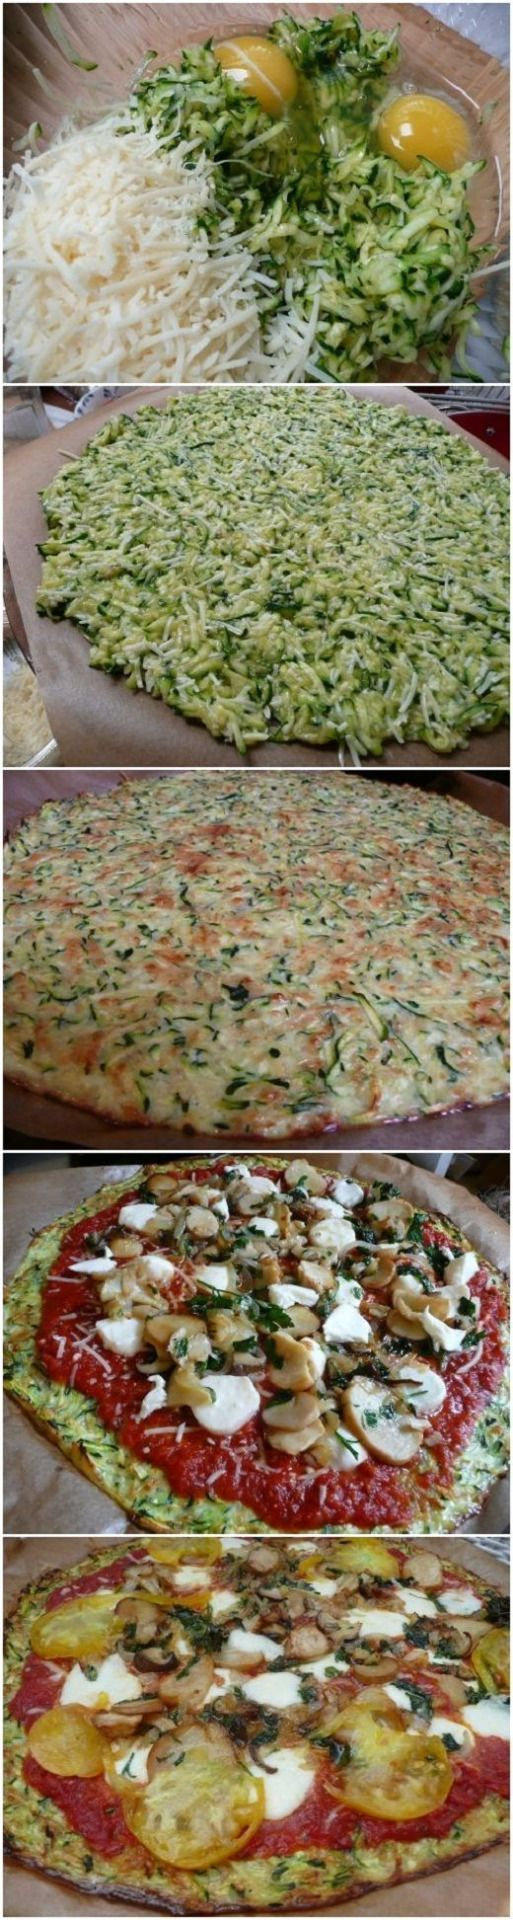 Grain Free Pizza